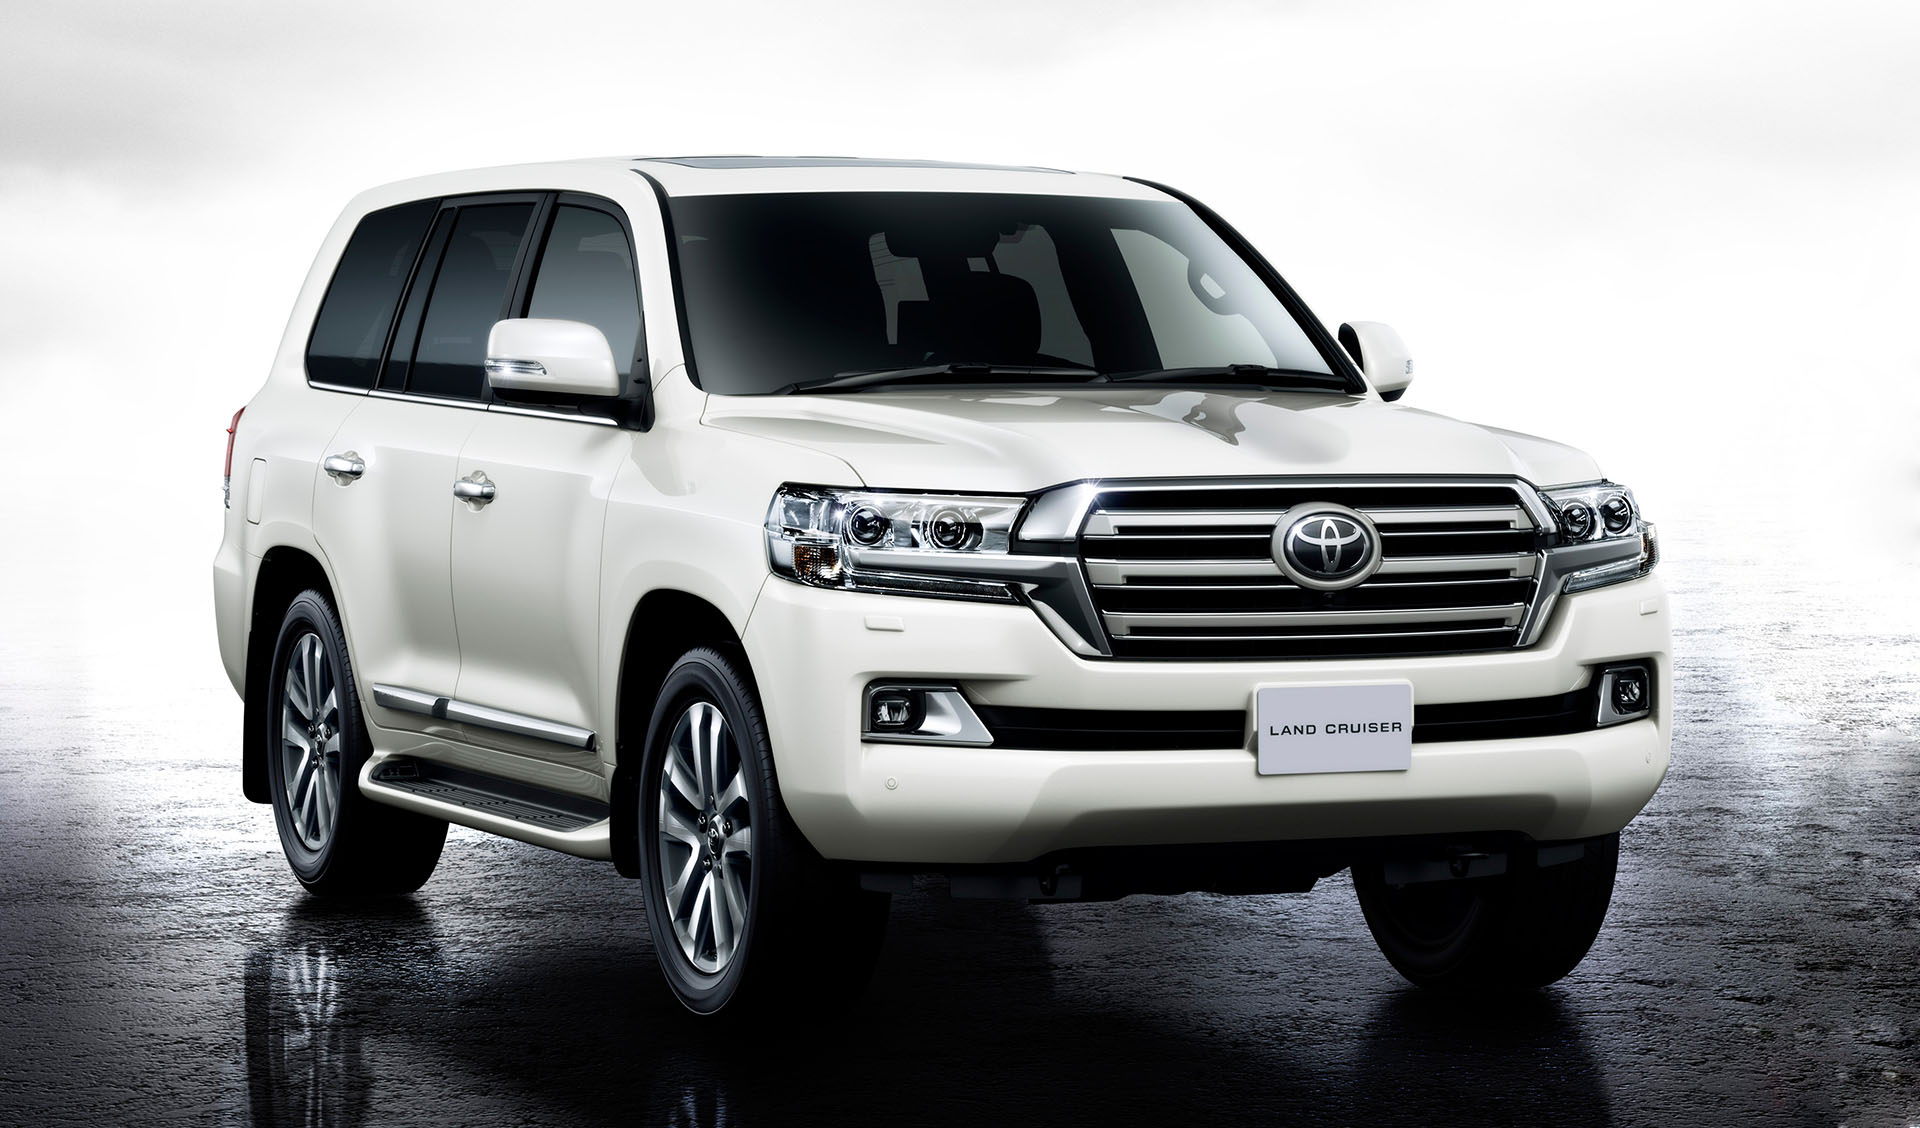 2016-Toyota-Land-Cruiser-Review-Engine